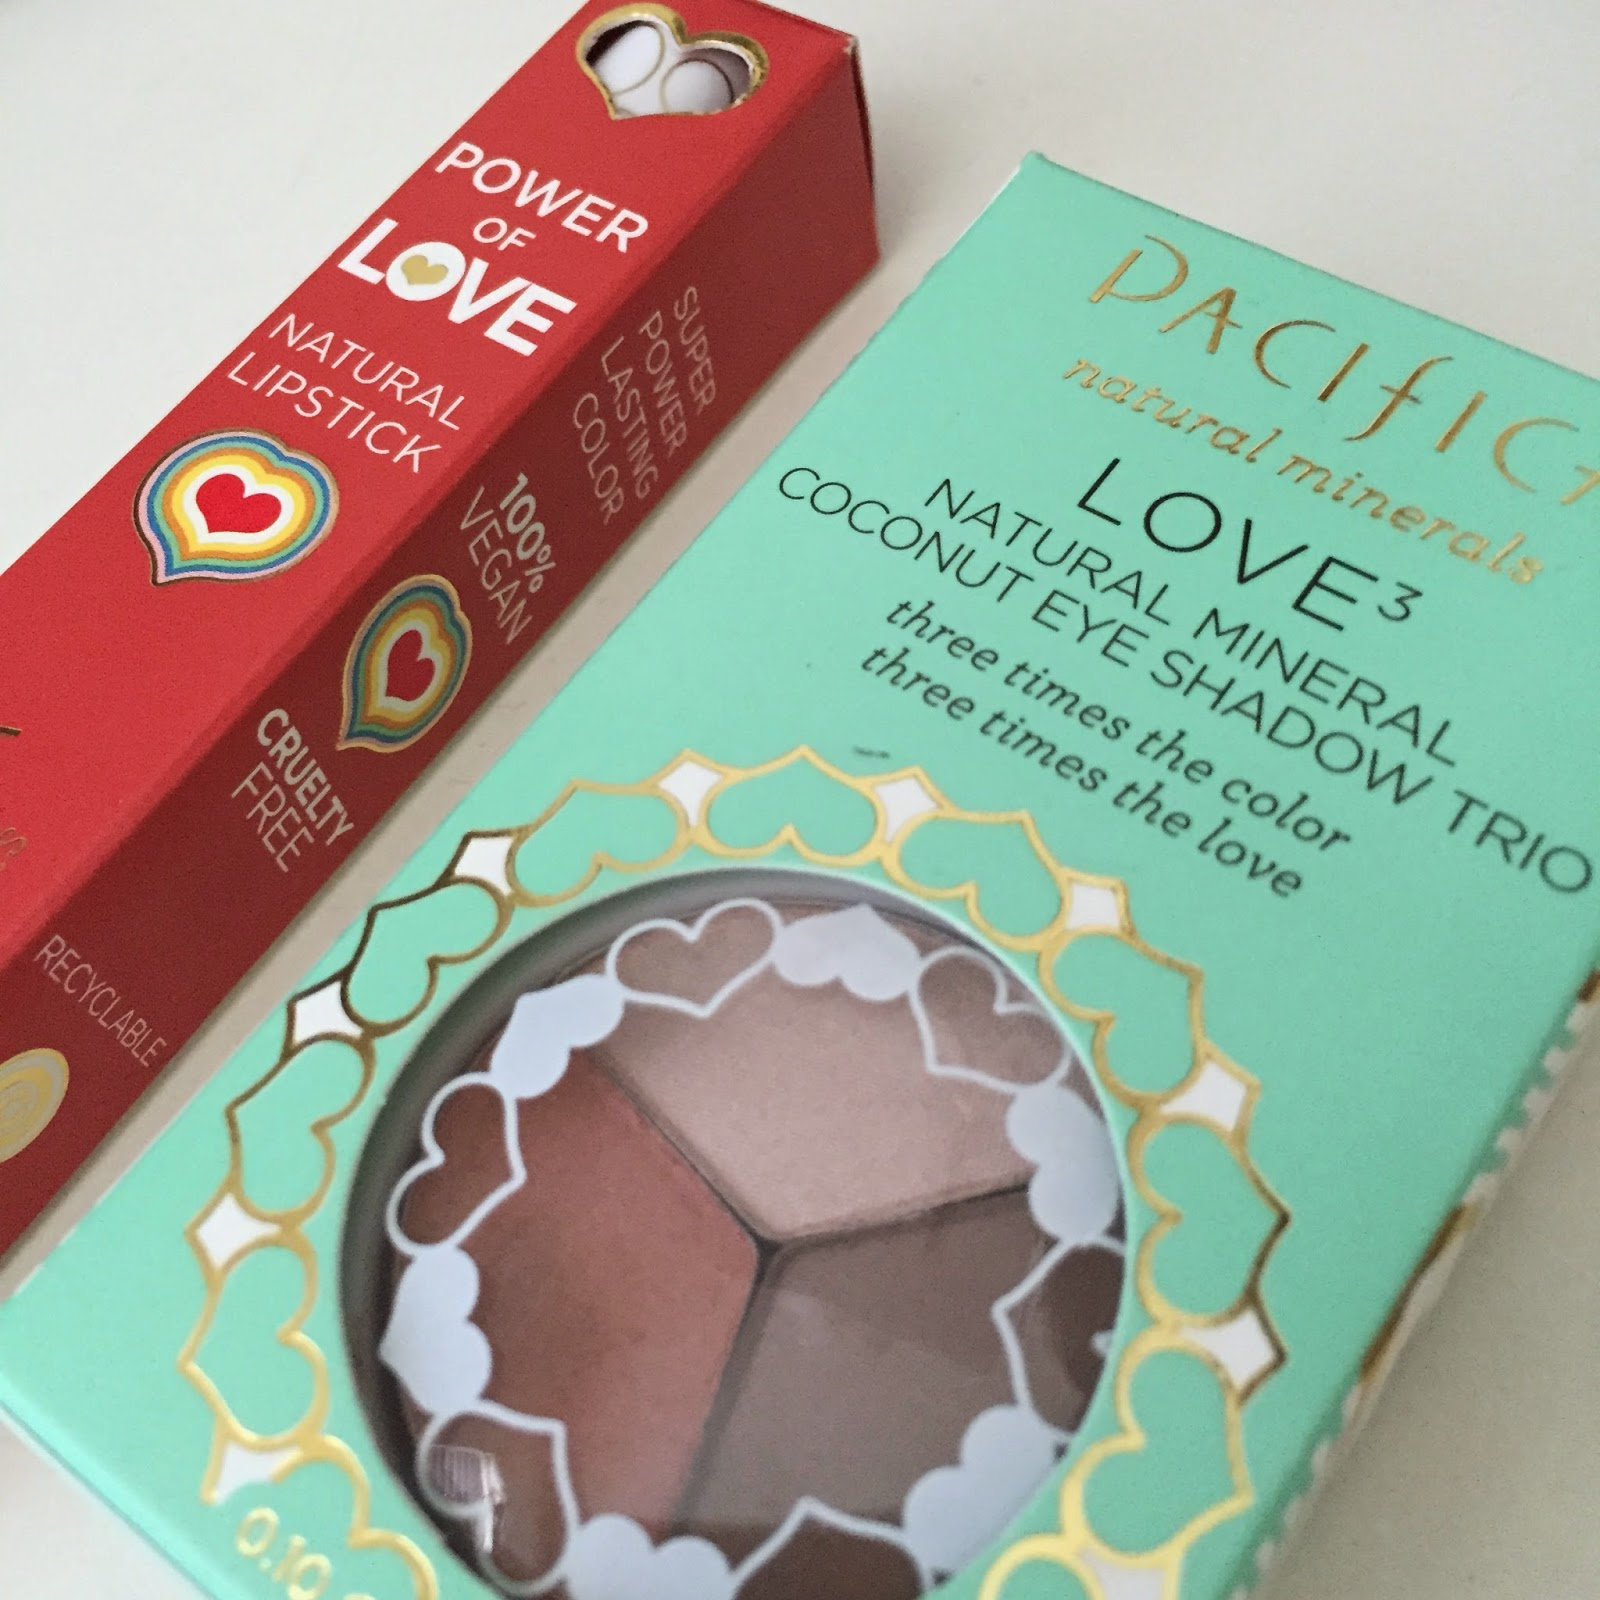 Power Of Love Natural Lipstick by pacifica #22